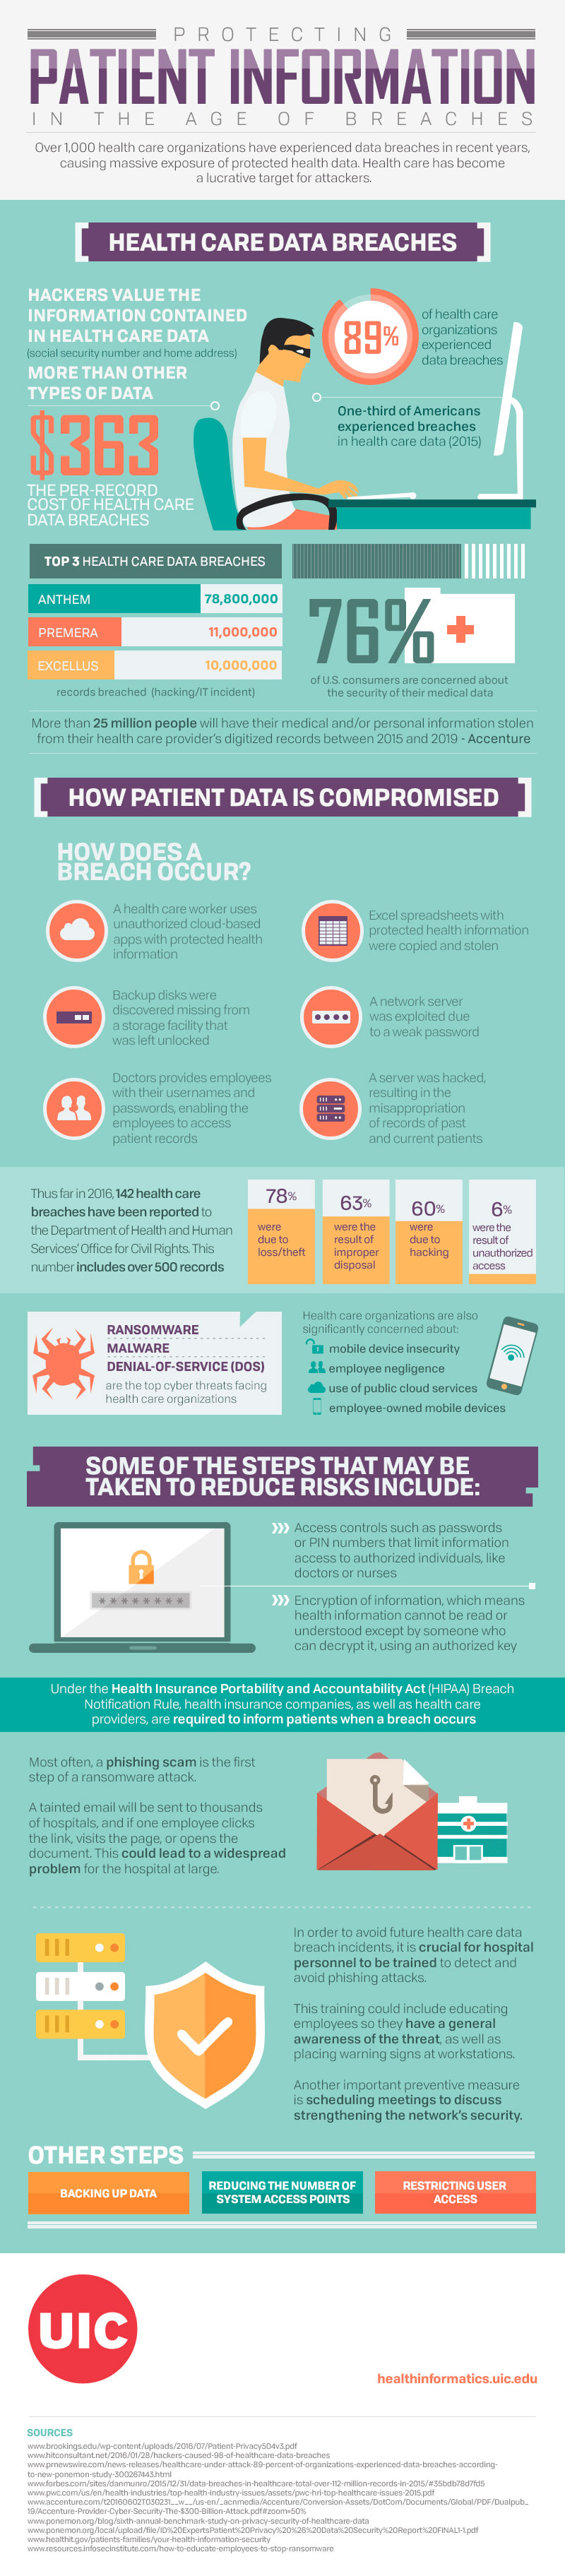 PROTECTING PATIENT INFORMATION IN THE AGE OF BREACHES INFOGRAPHIC